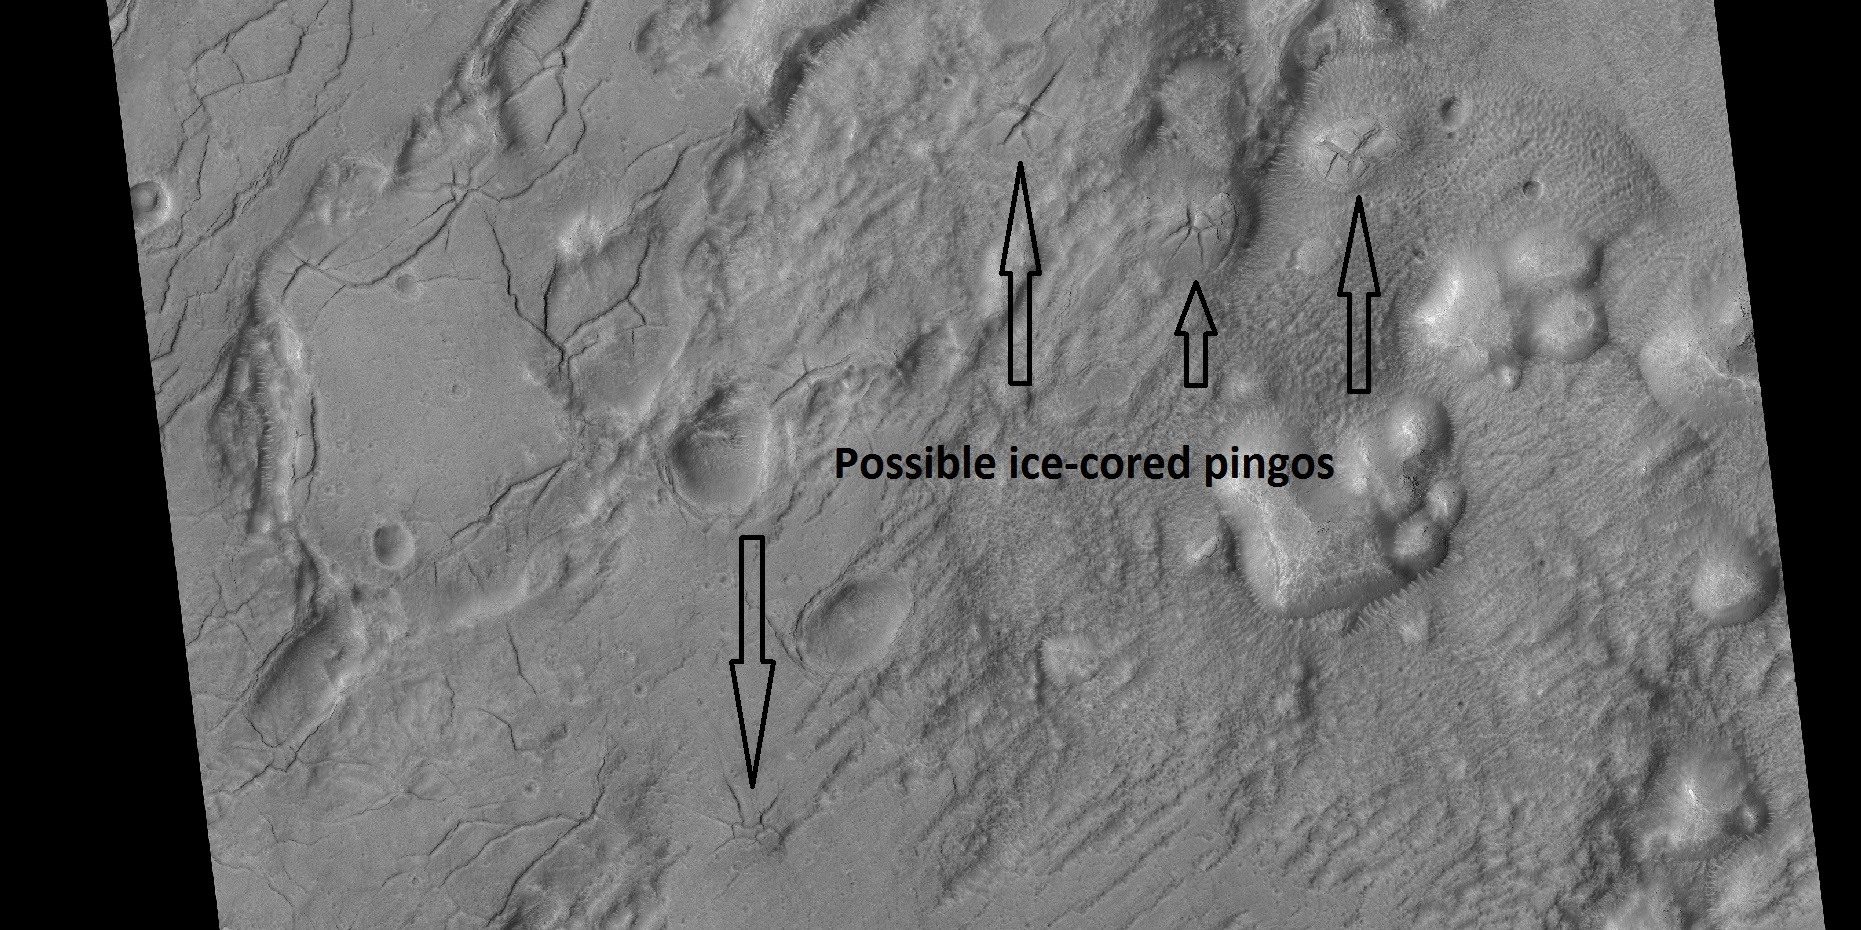 Arrows point to possible pingos, as seen by HiRISE under HiWish program Pingos contain a core of pure ice.